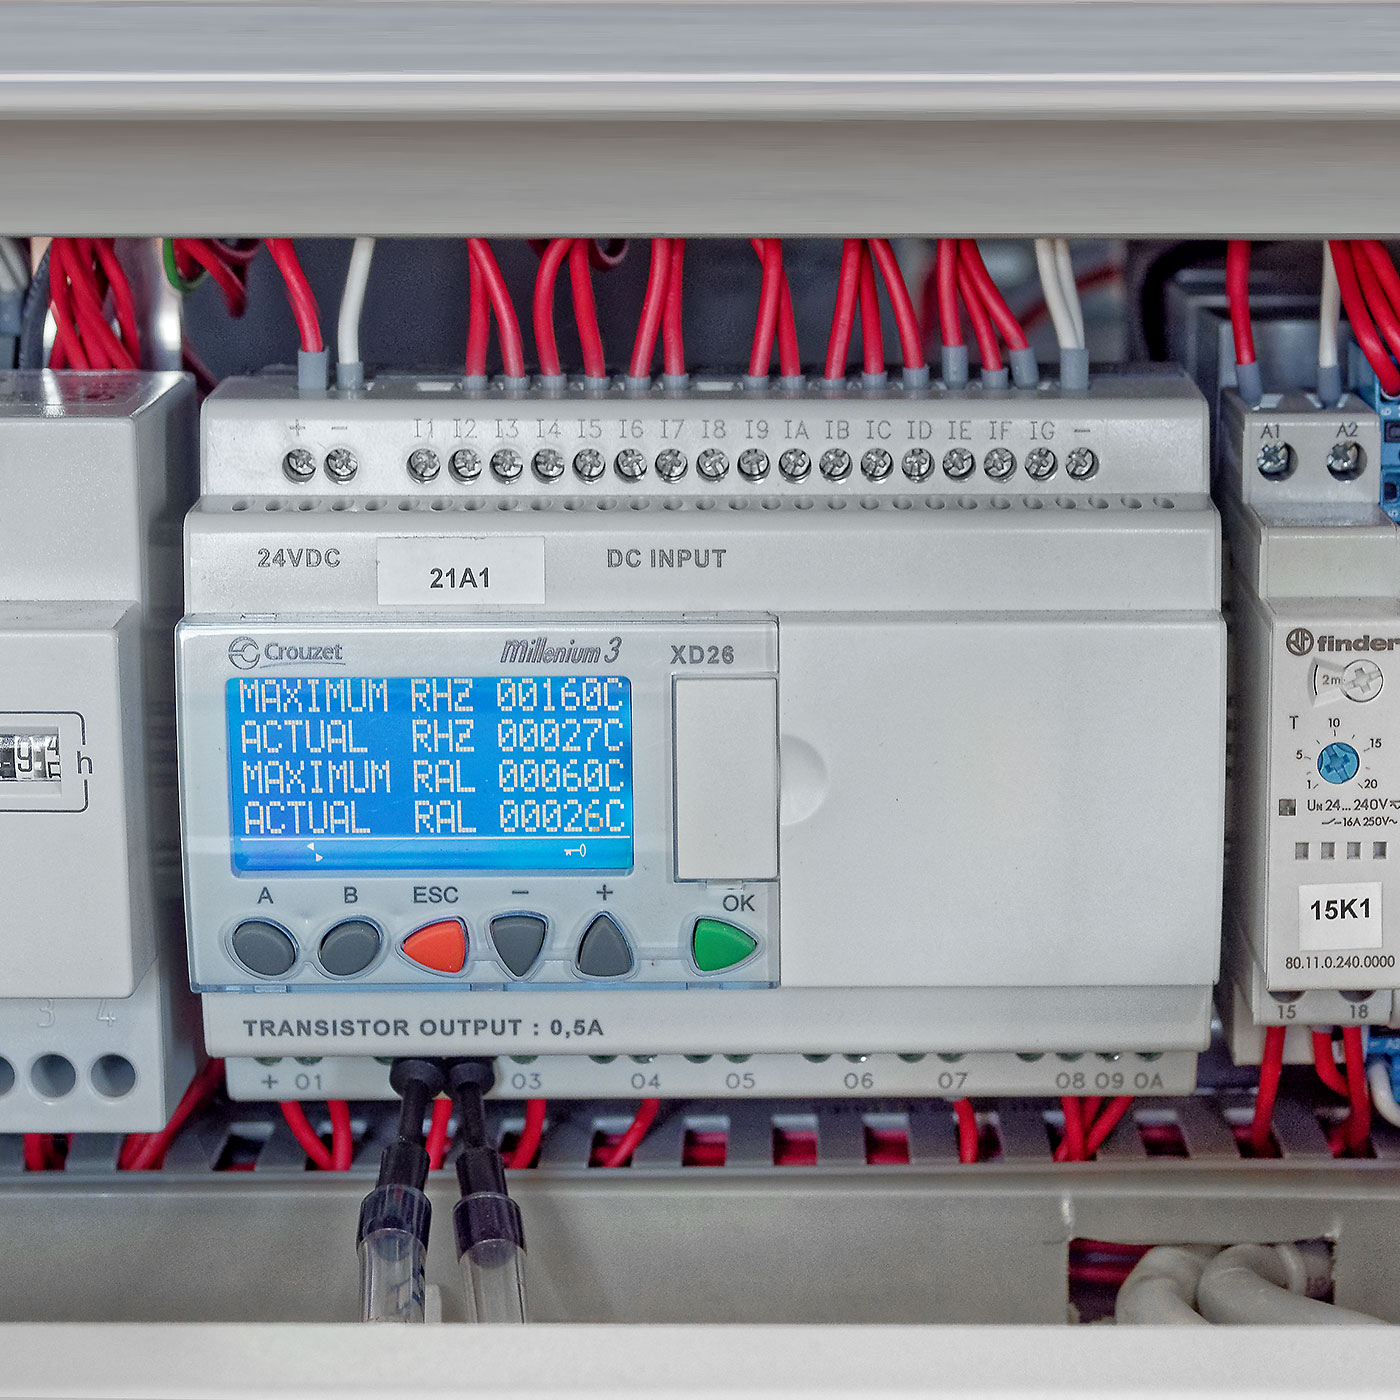 Powder Coating Oven Controller Wiring Diagram Moreover Rotary Phase